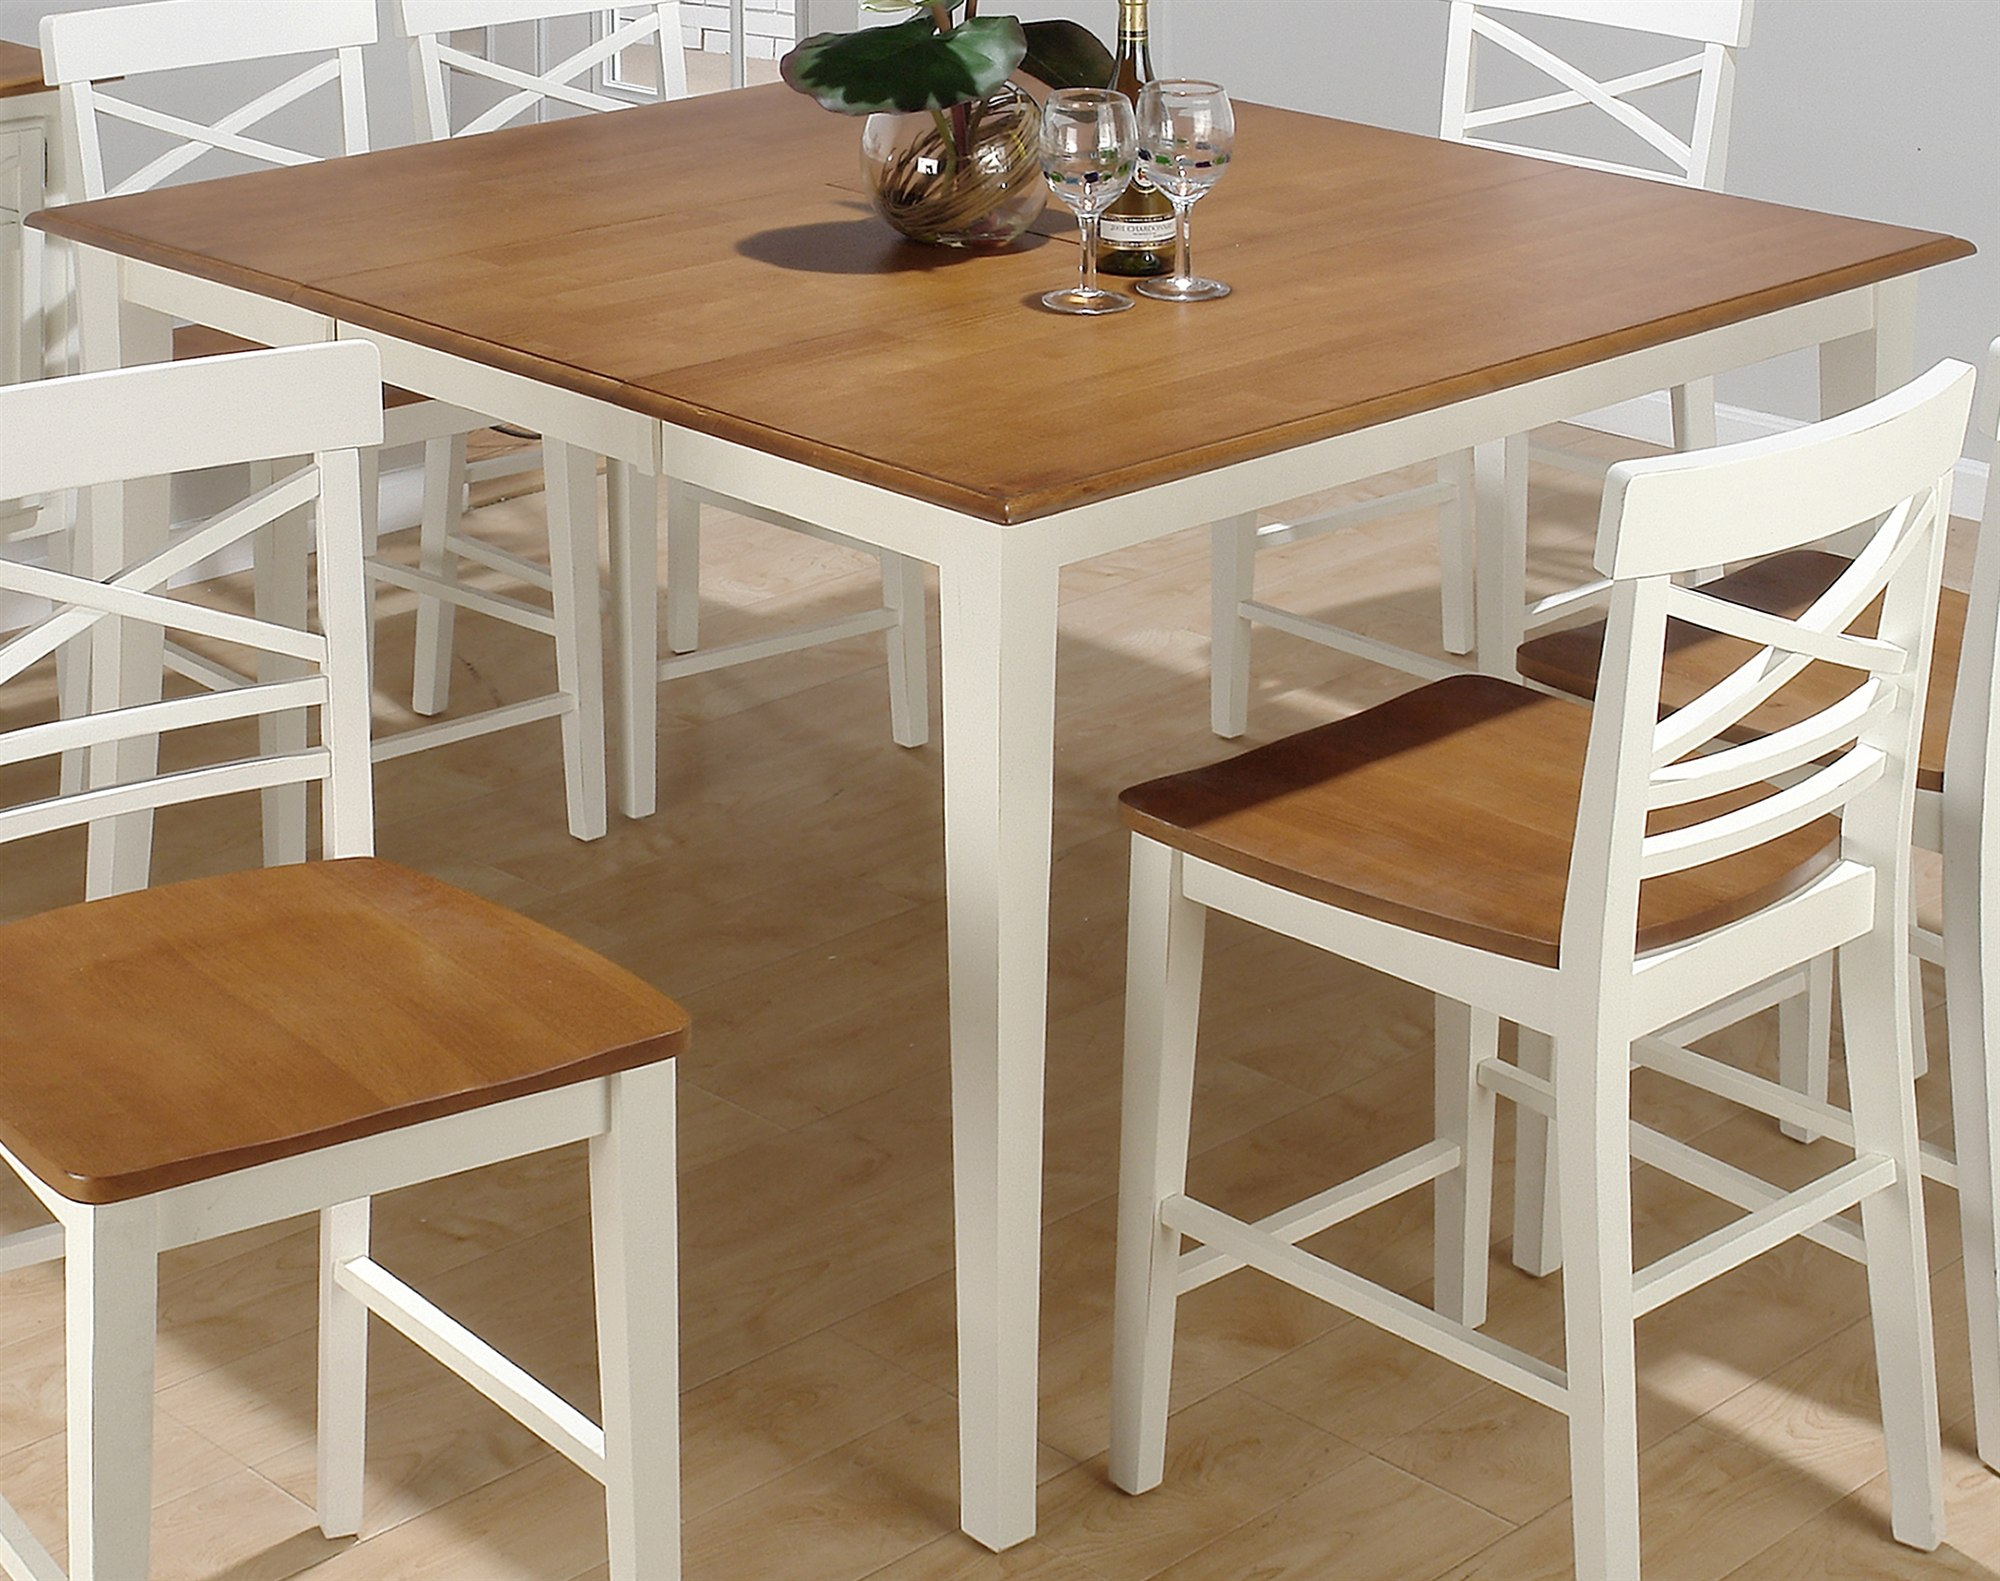 Ikea Table And Chairs Kitchen Dinette Sets Ikea Kitchen Dinette - Kitchen tables ikea